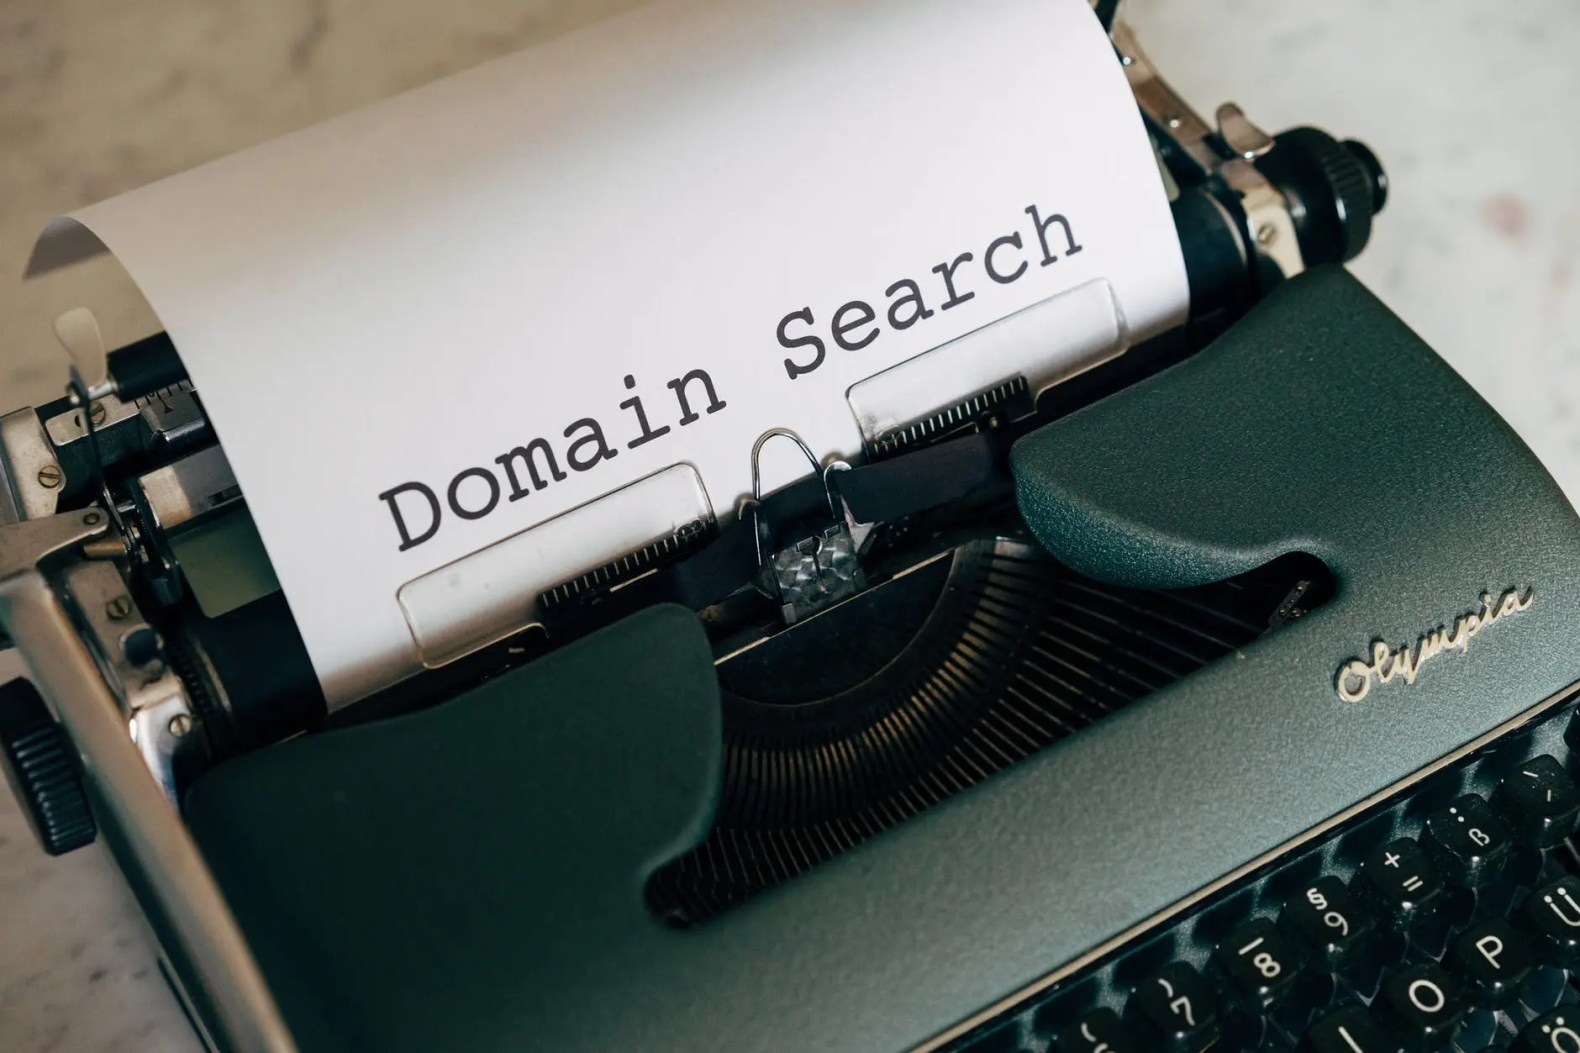 Picking A Name For Your Domain (Blog) or Your Channel (YouTube) - Make money online for beginner